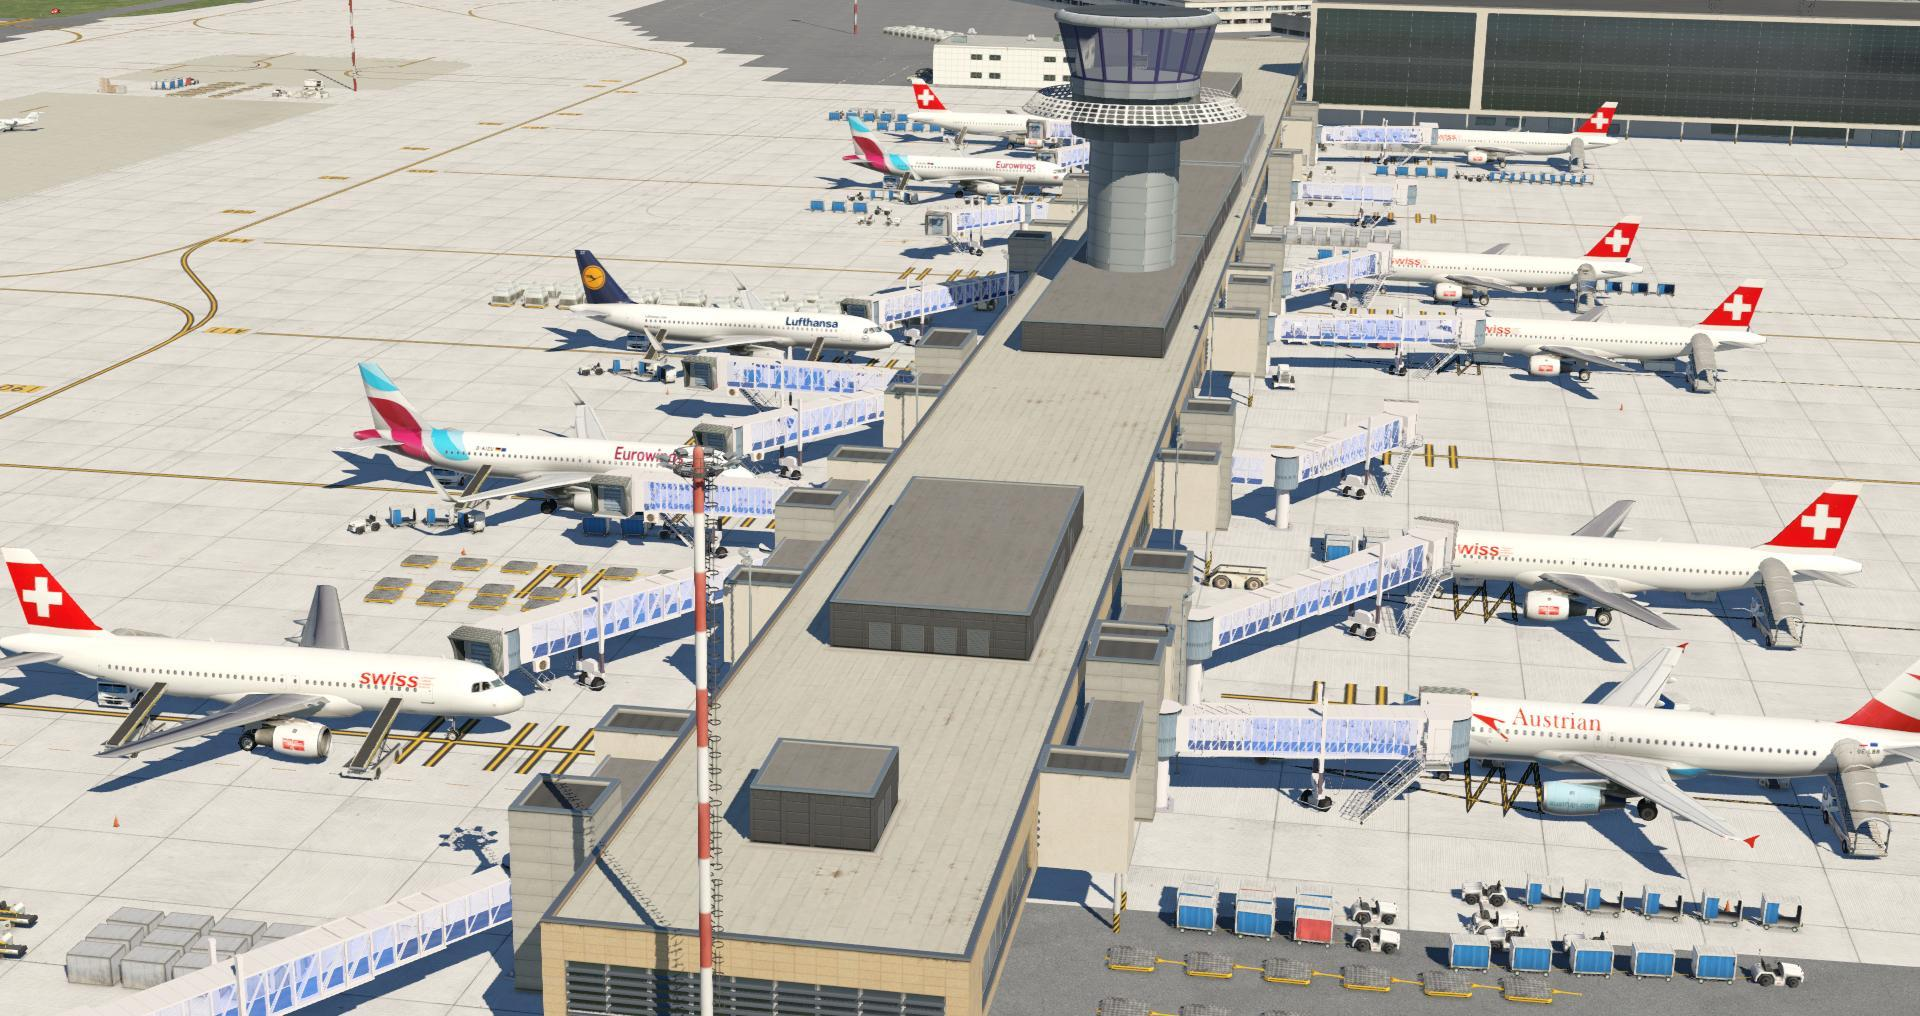 LSZH Zurich - Scenery Packages (v11,v 10, v9) - X-Plane Org